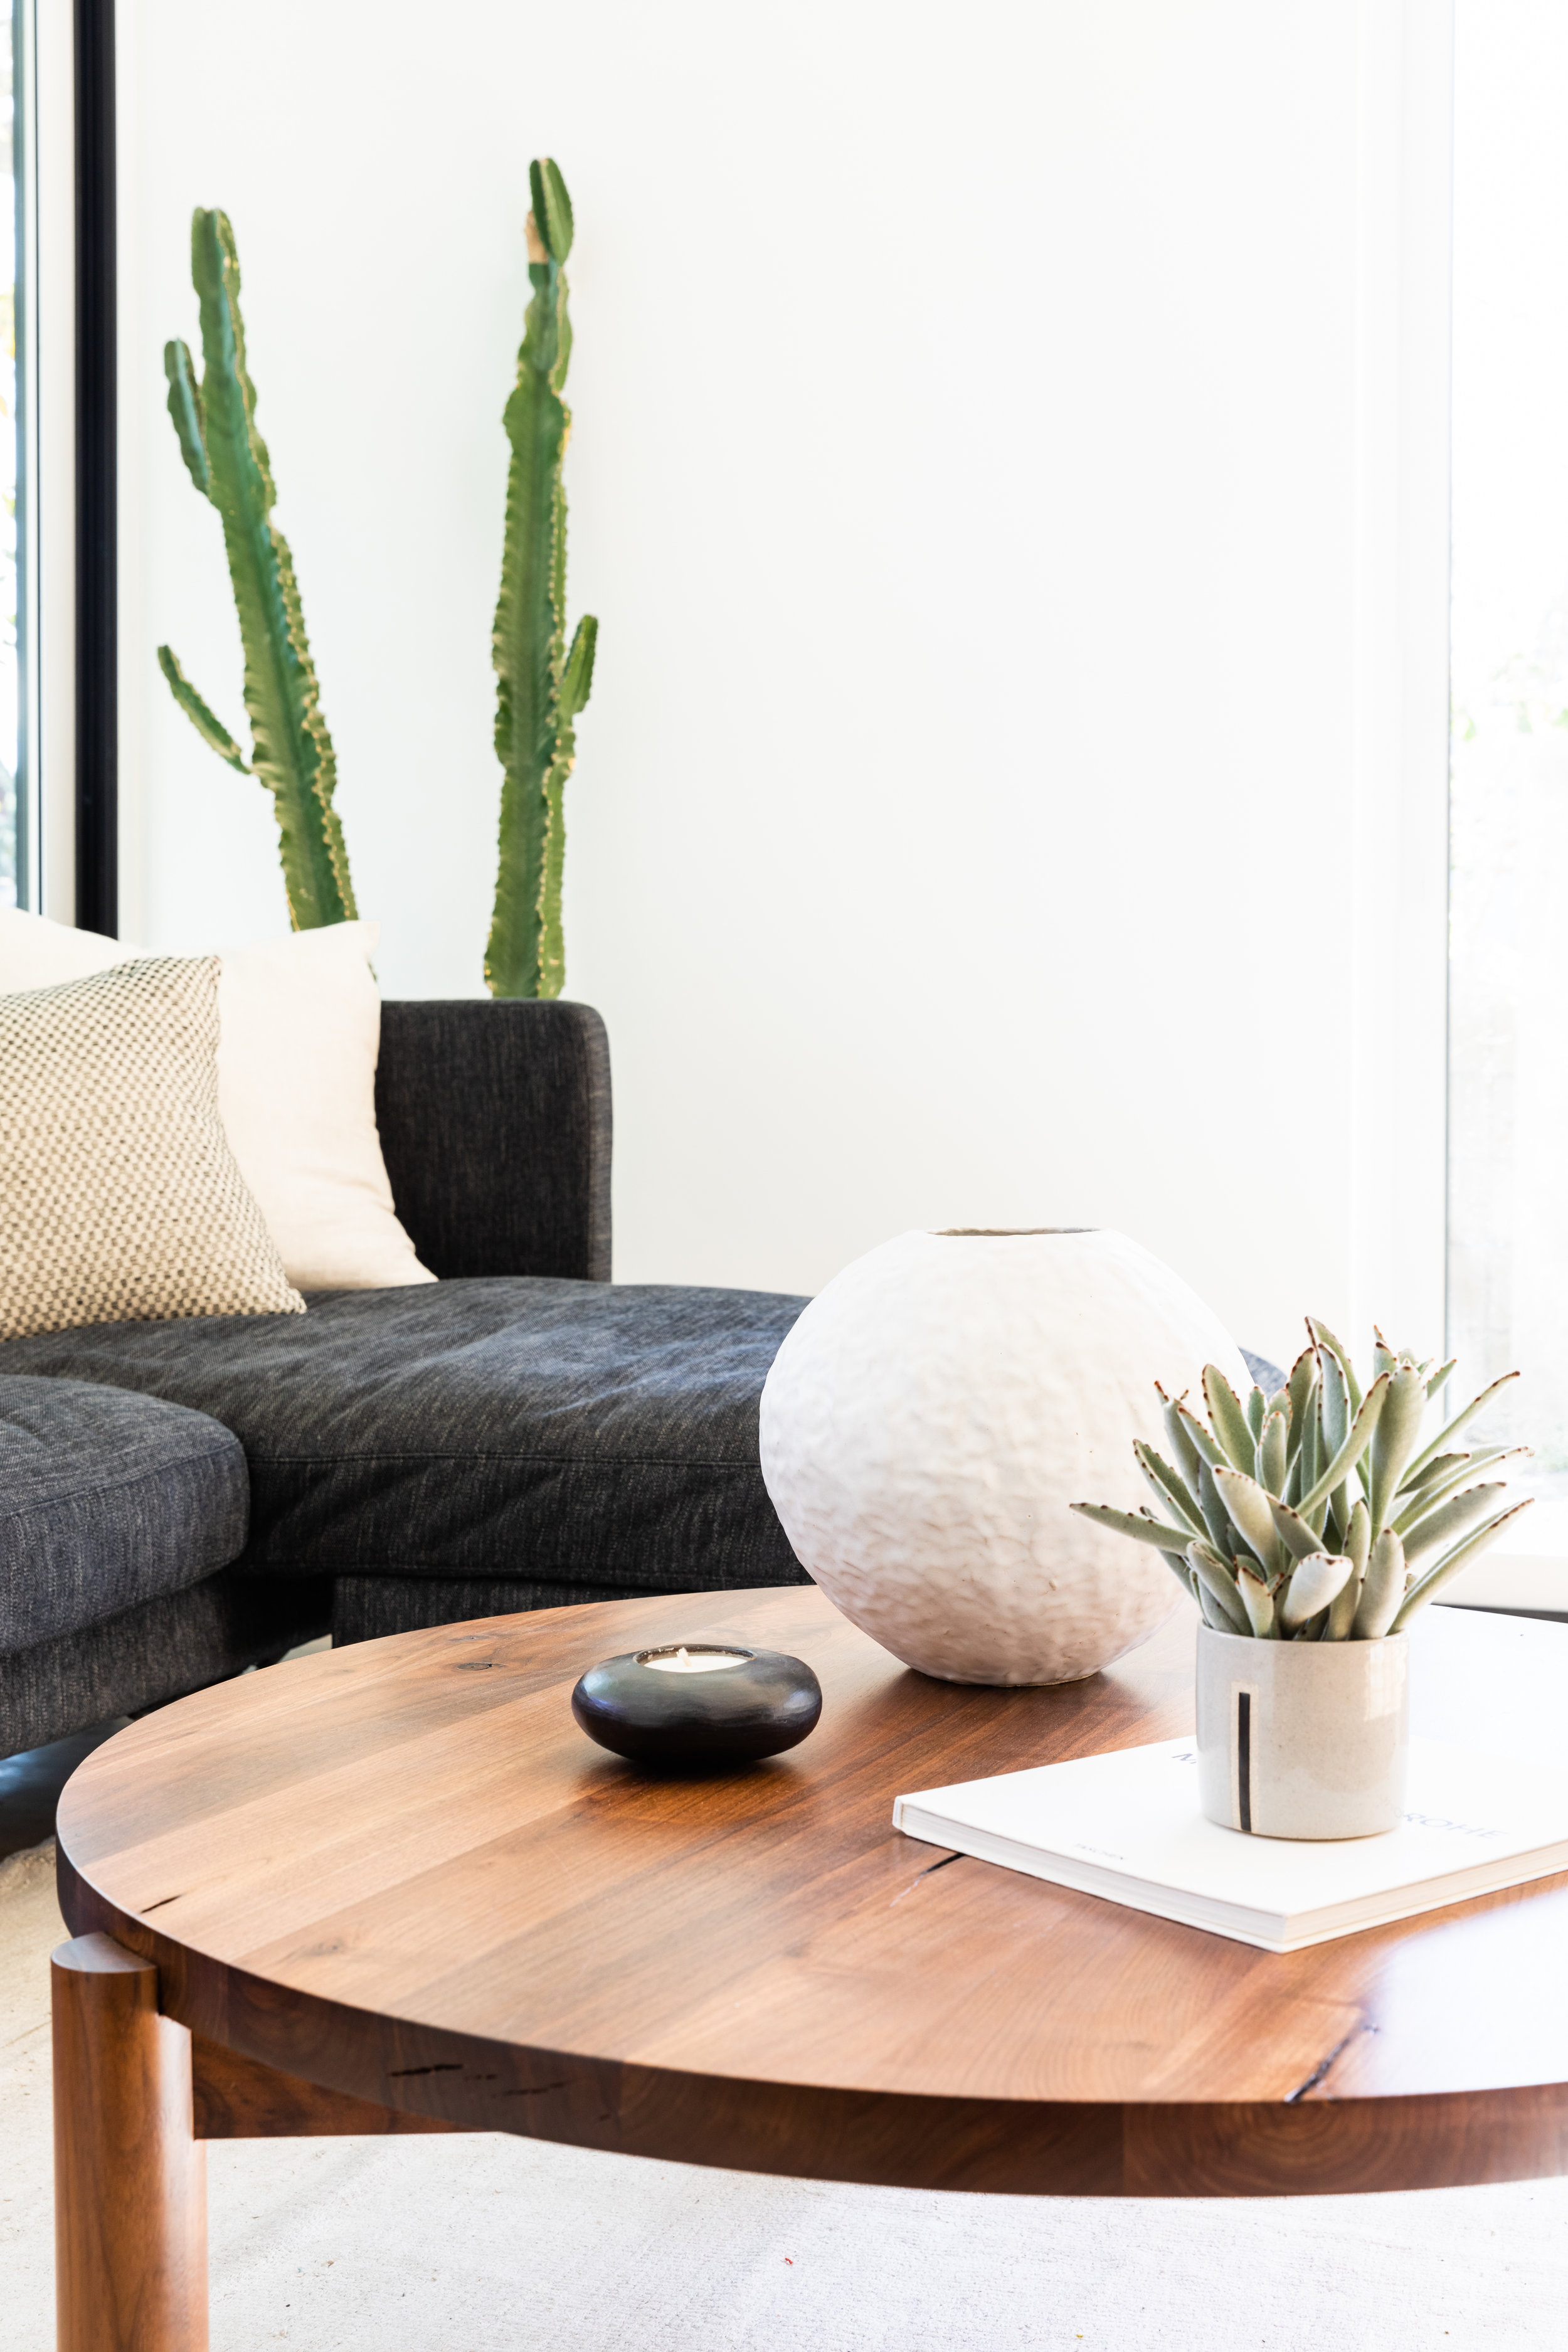 Round, wood coffee table in modern living room with ceramic vase, candle, and potted plant on it.